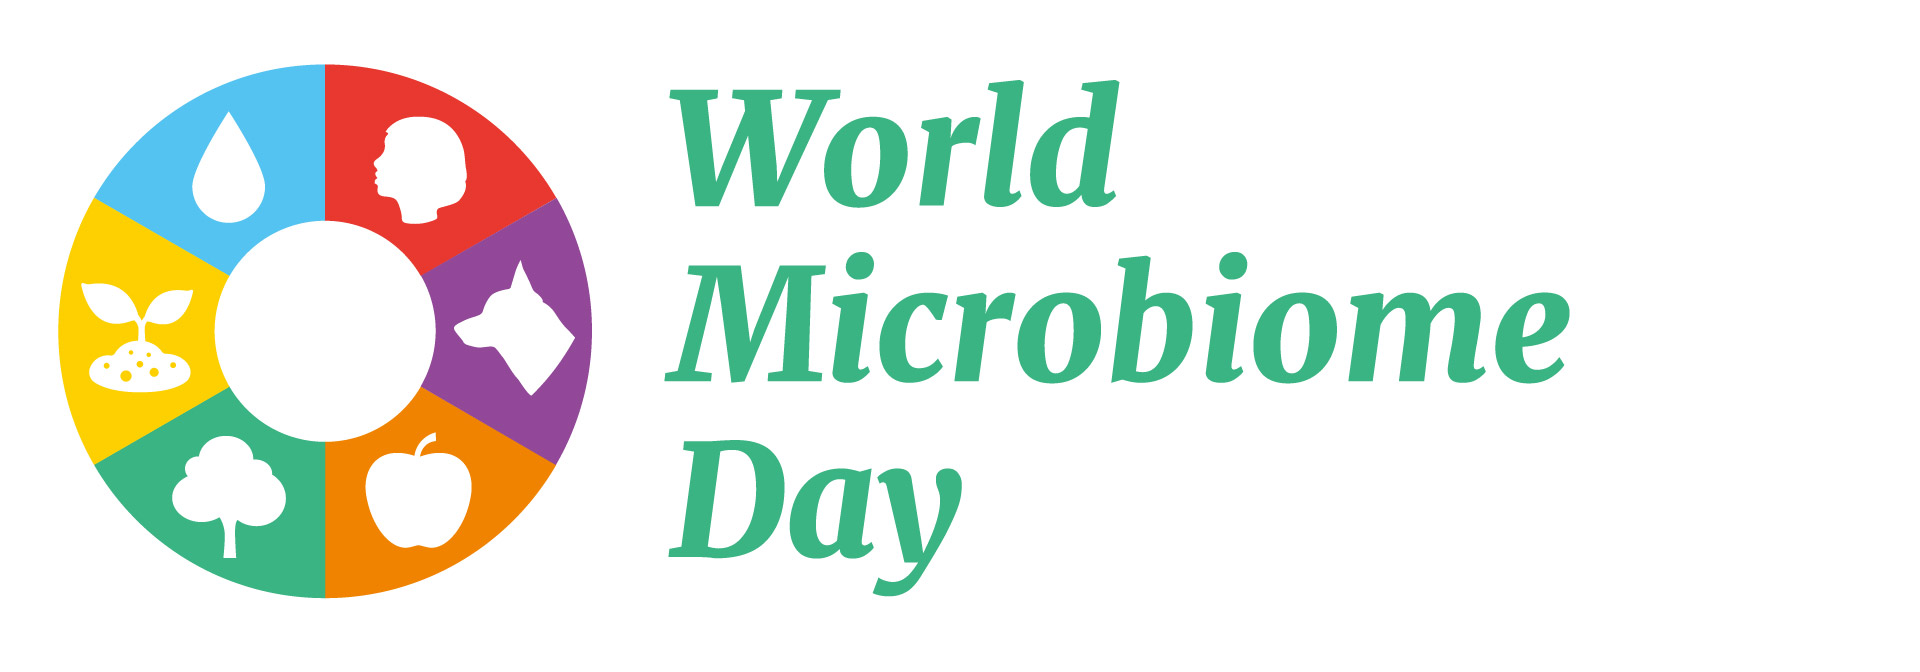 World Microbiome Day: One month to go!